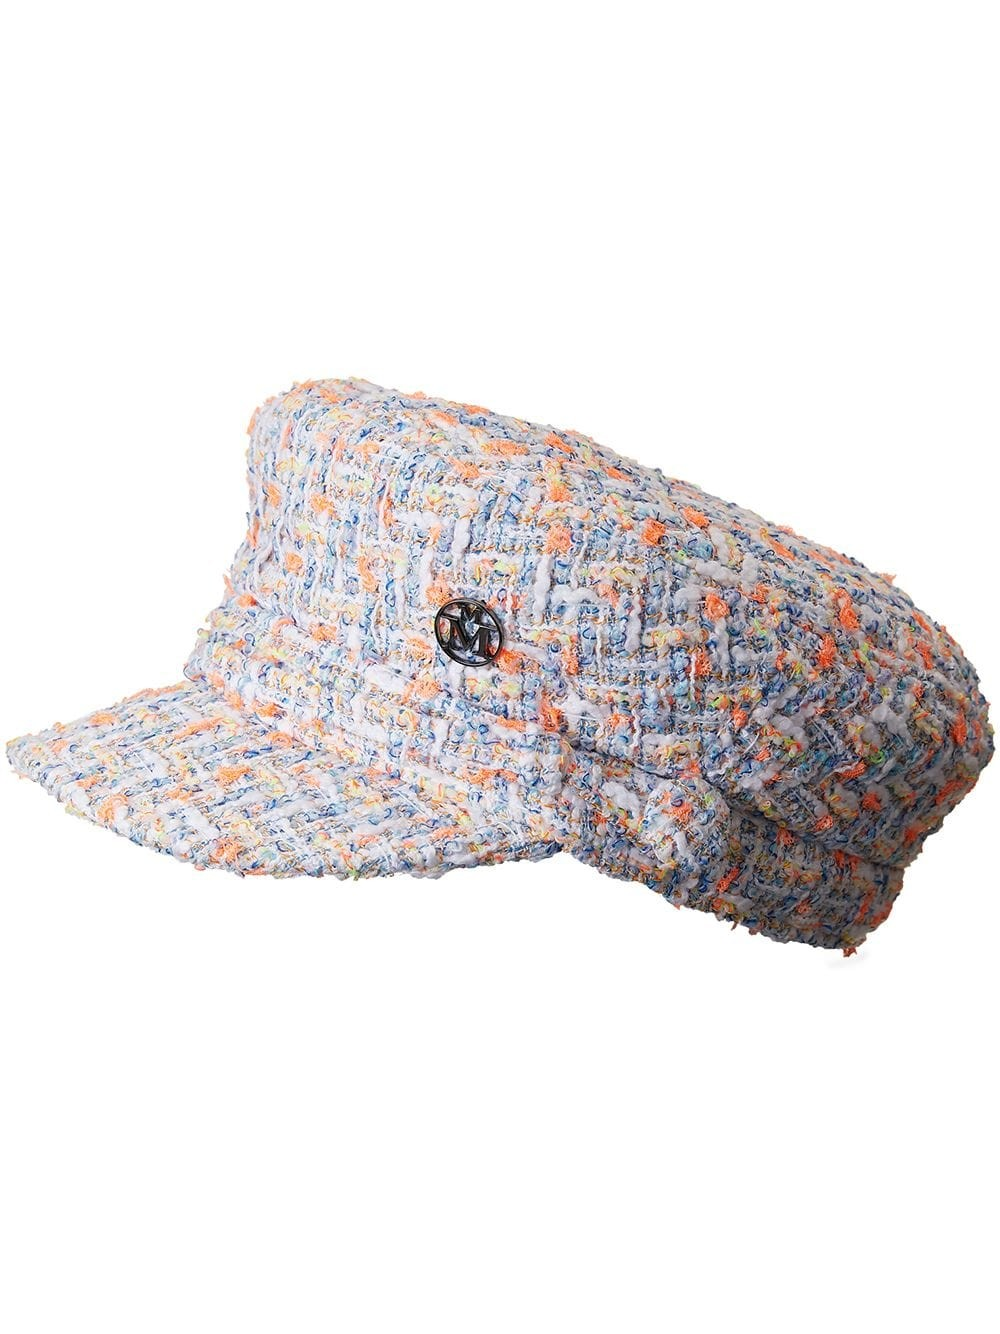 NEW ABBY HAT 21PS SPRING TWEED MULTI